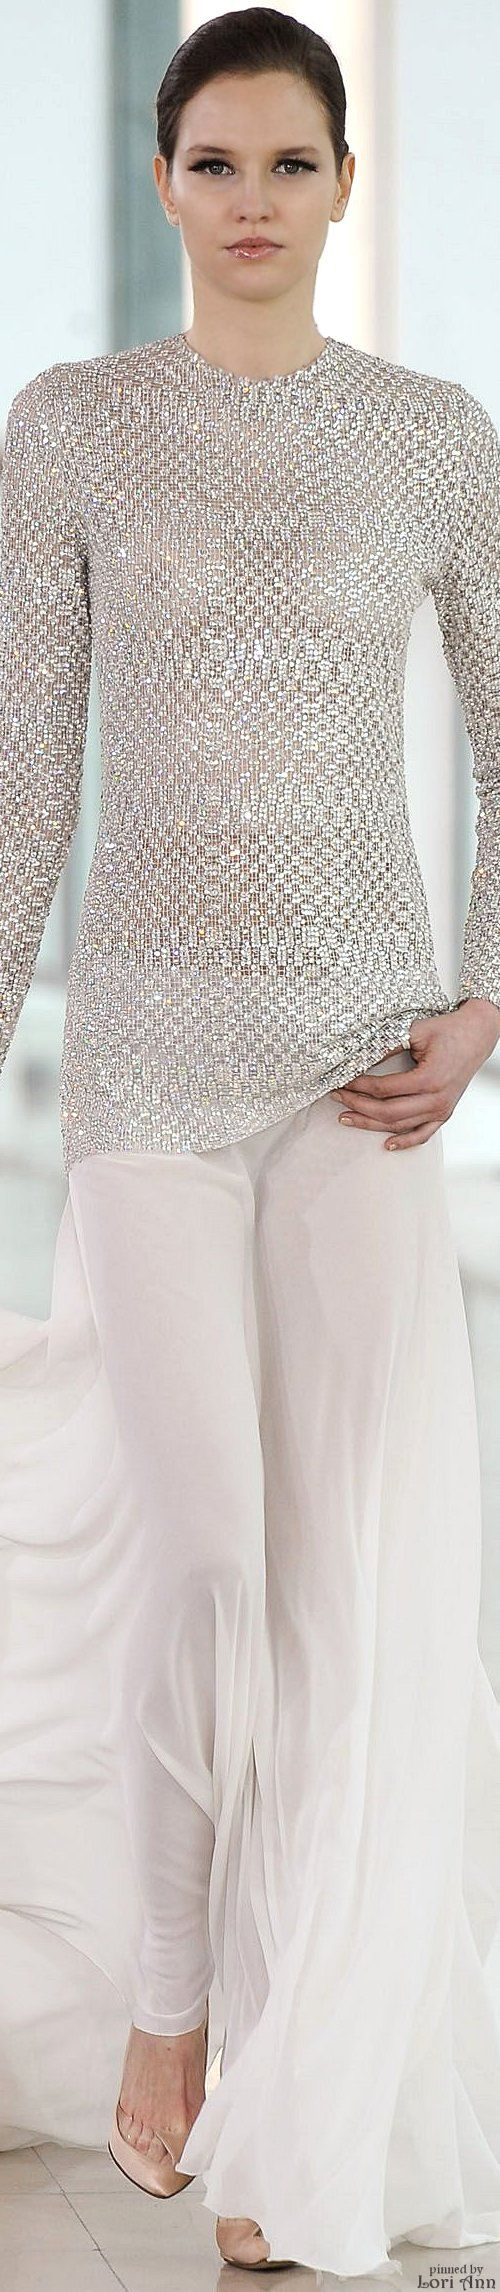 Stéphane Rolland ~ Couture White Metallic Long Sleeve Top w White Silk Skirt Spring 2015